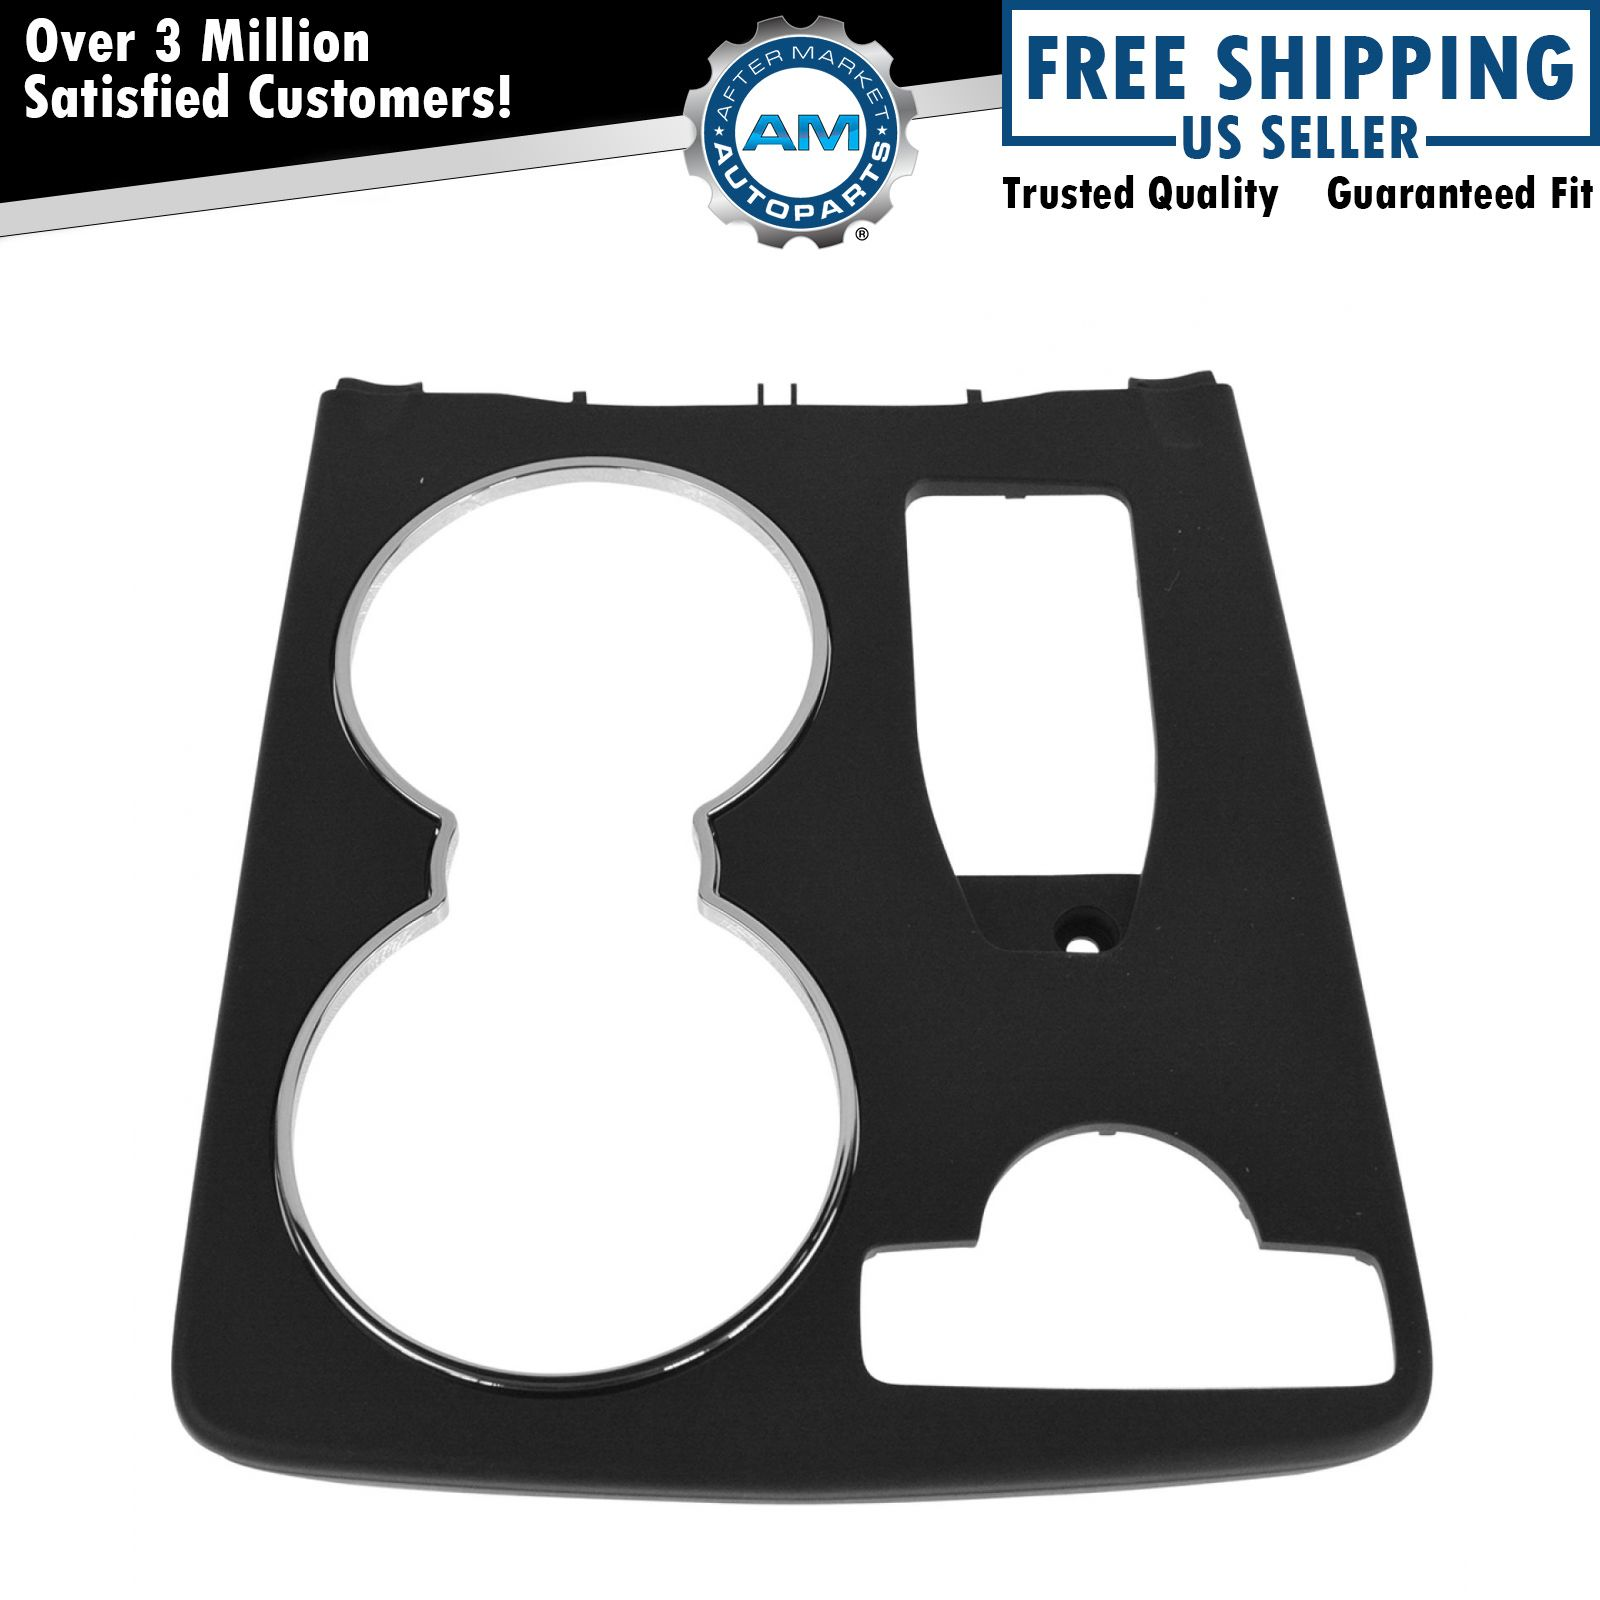 Oem cup holder trim bezel panel console mounted for for Mercedes benz cup holder replacement